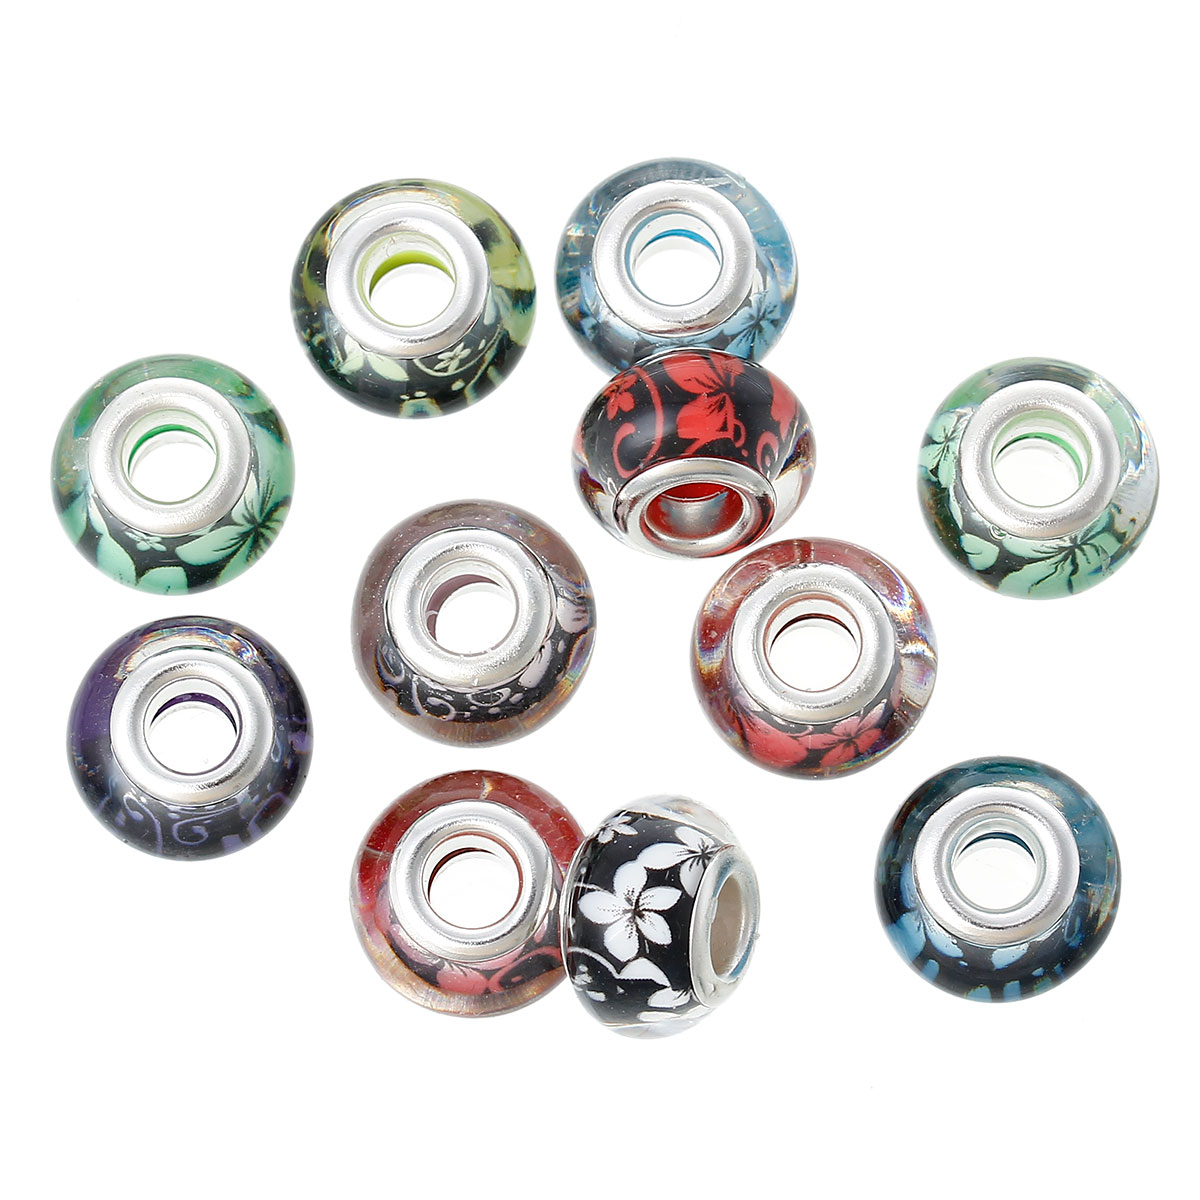 Beads 4pcs Tibetan Silver Round Flower Square Flat Spacer Beads Charms 17mm Hot Sale 50-70% OFF